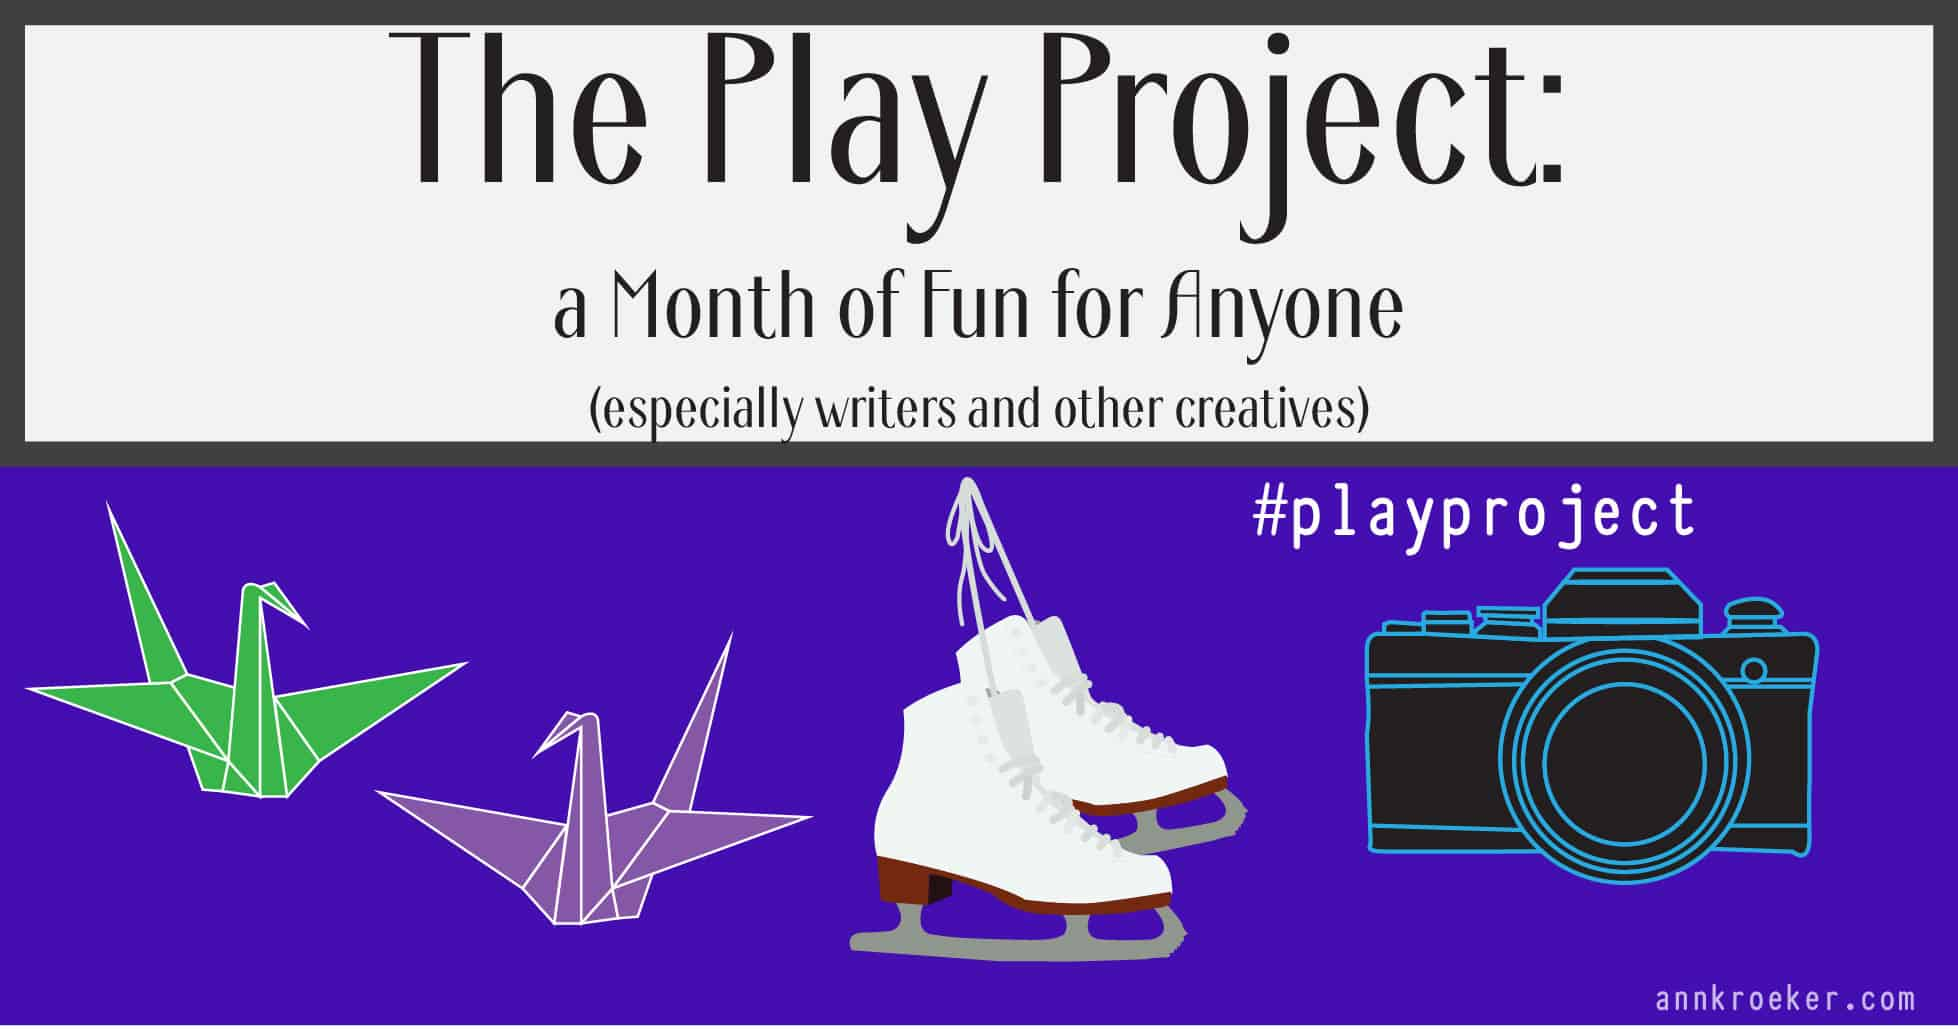 The Play Project - A Month of Fun for Anyone - Facebook sized